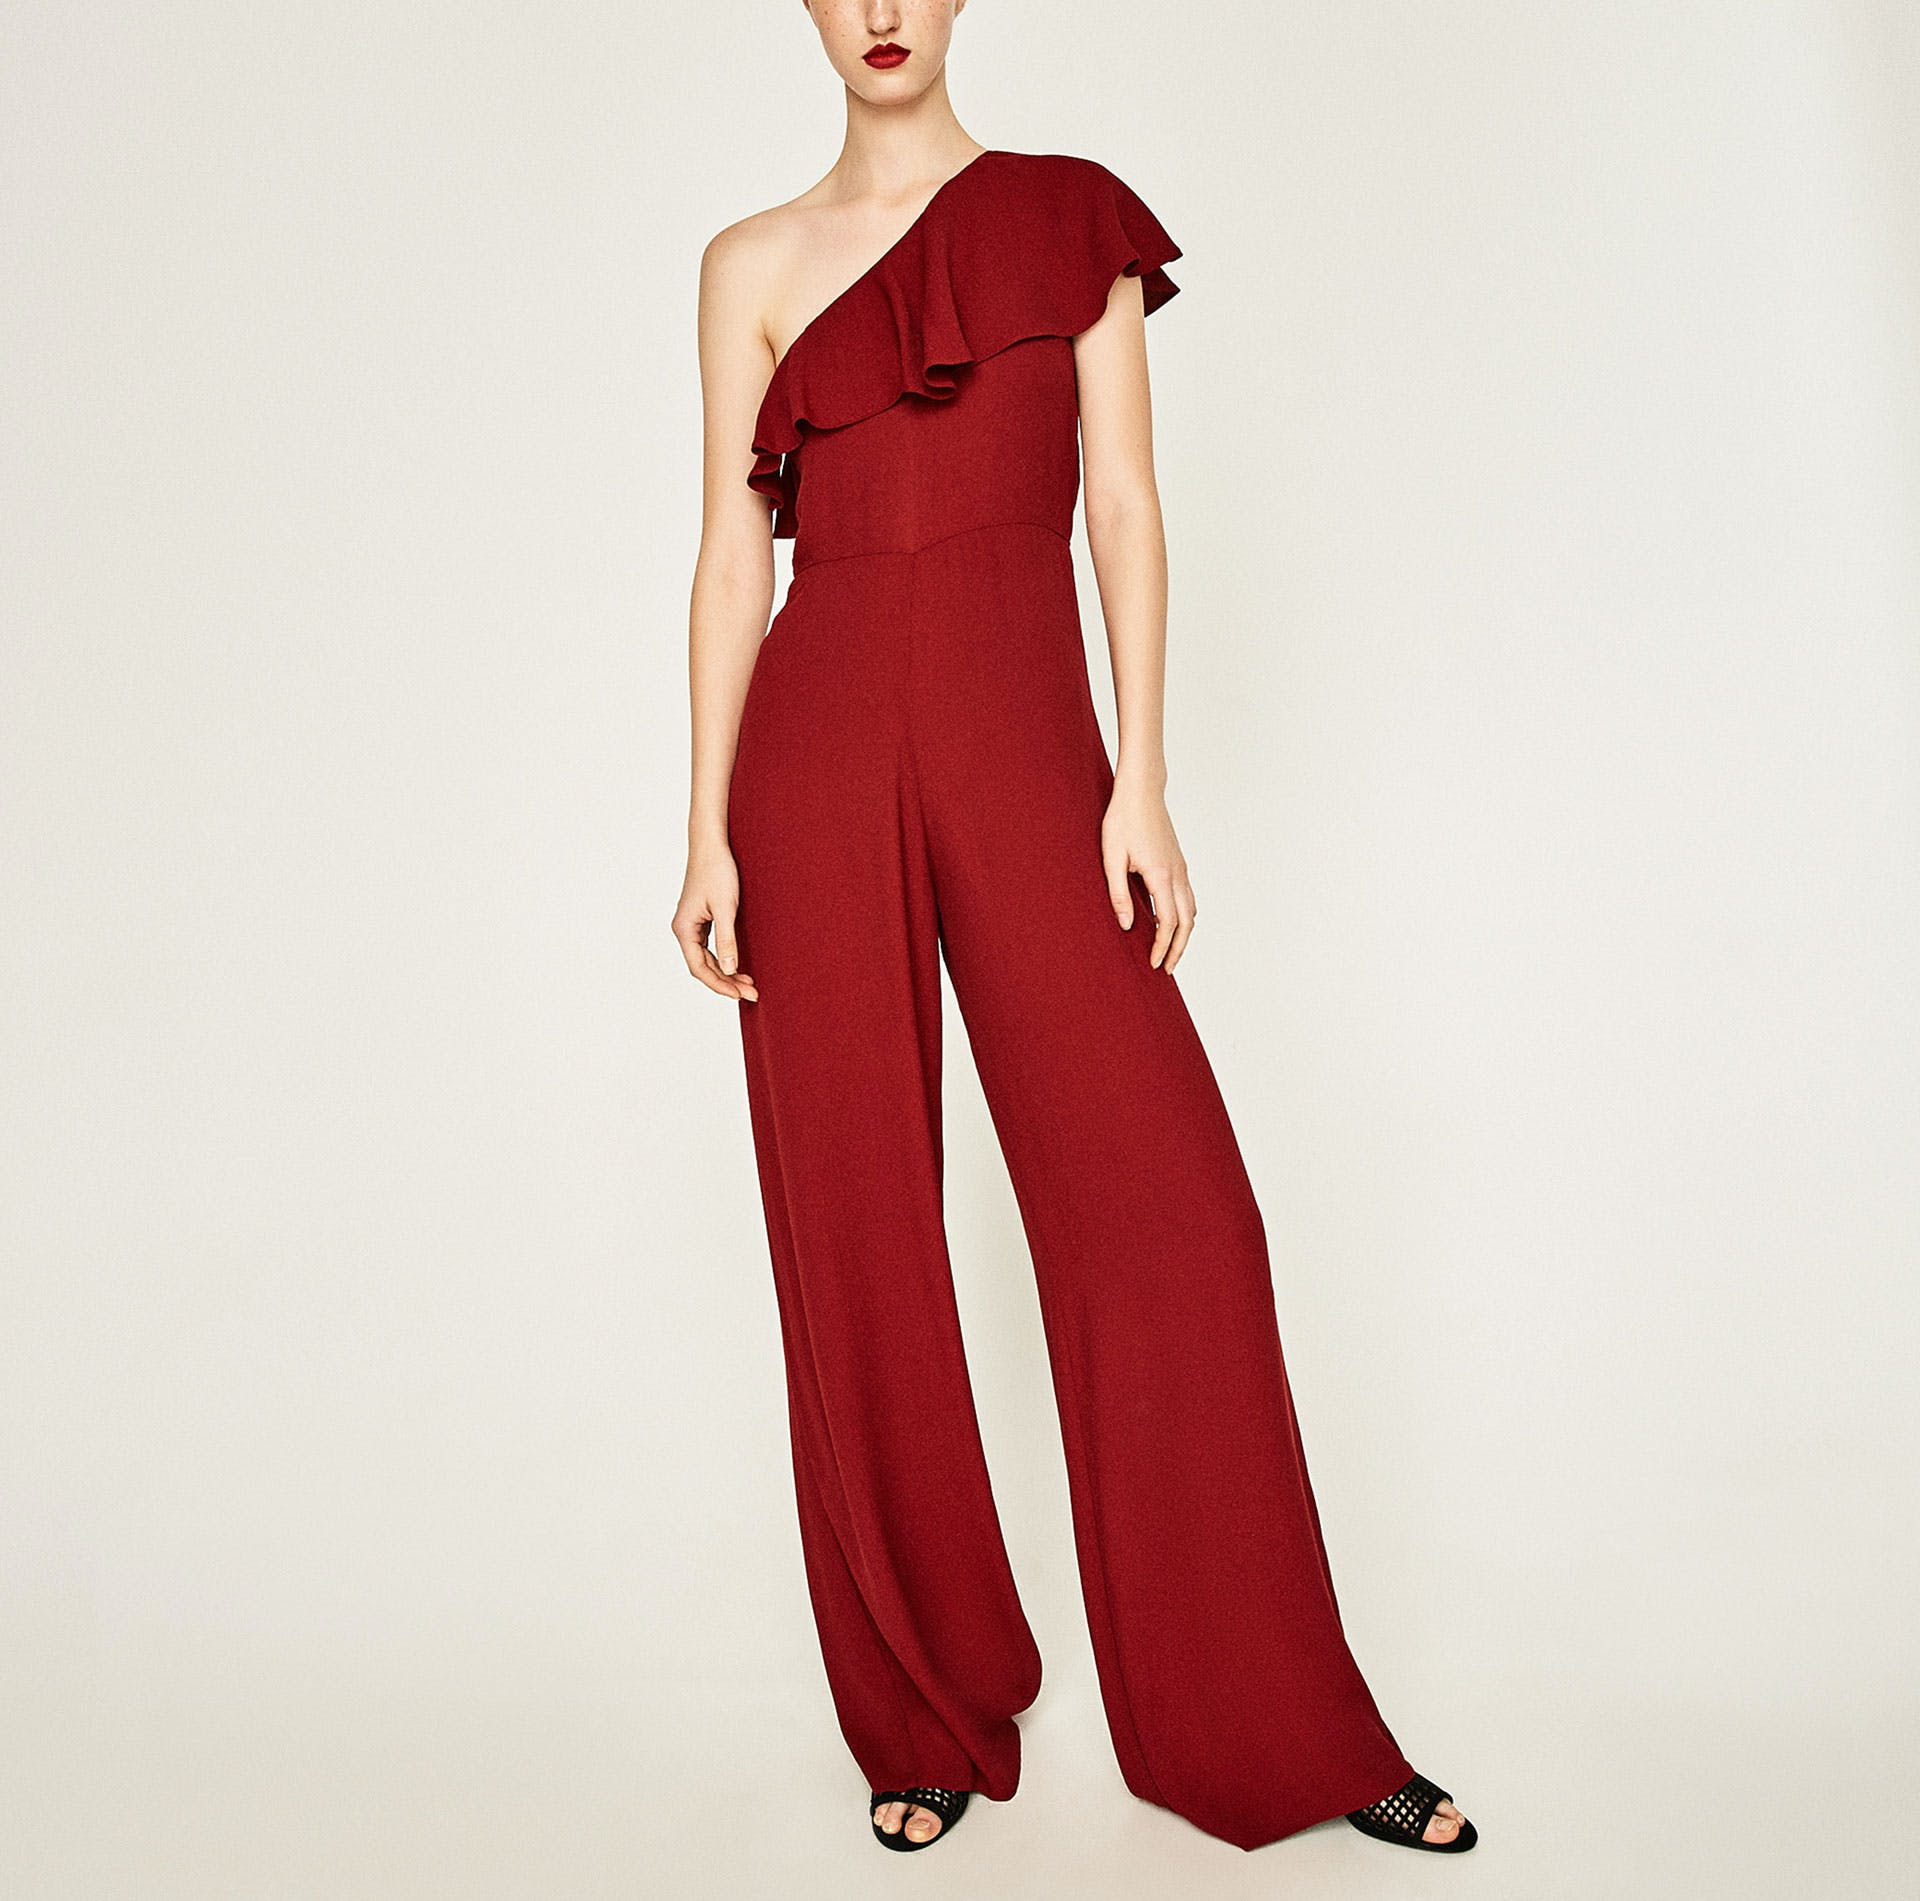 dallas what to buy from zara 4 ruffle jumpsuit